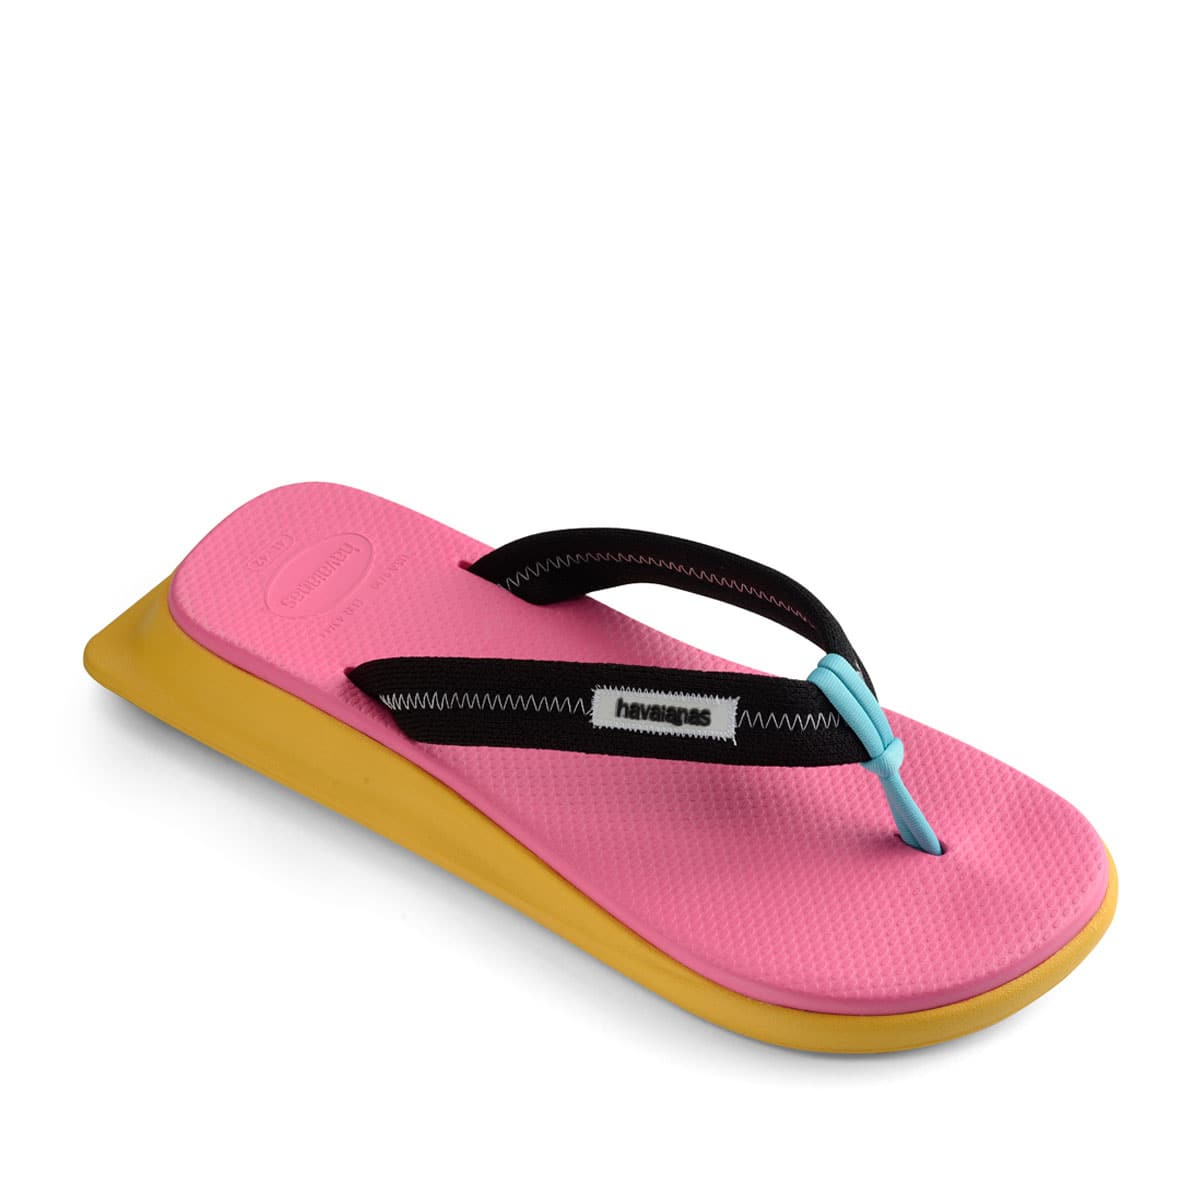 Havaianas TRADI ZORI INSITUTIONAL Pink/Black 20FA-S_photo_large